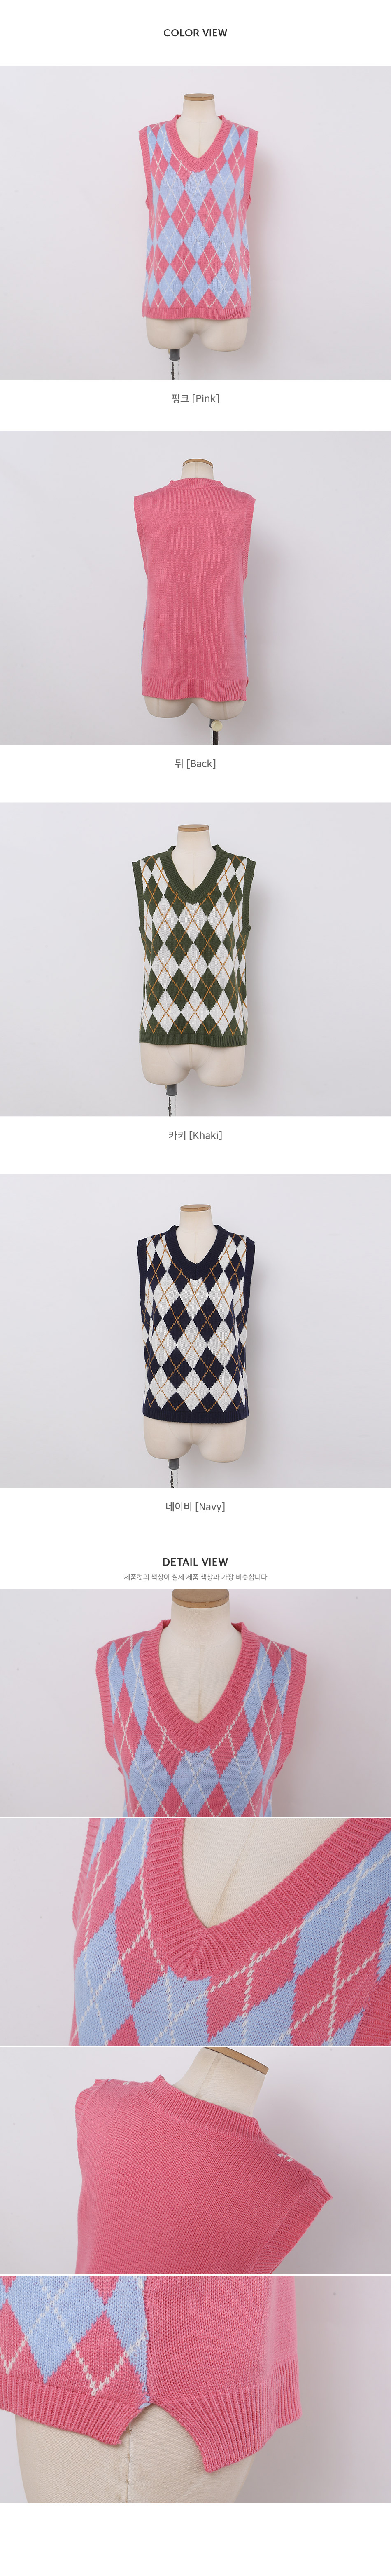 Pure Daily Gail Knit Vest